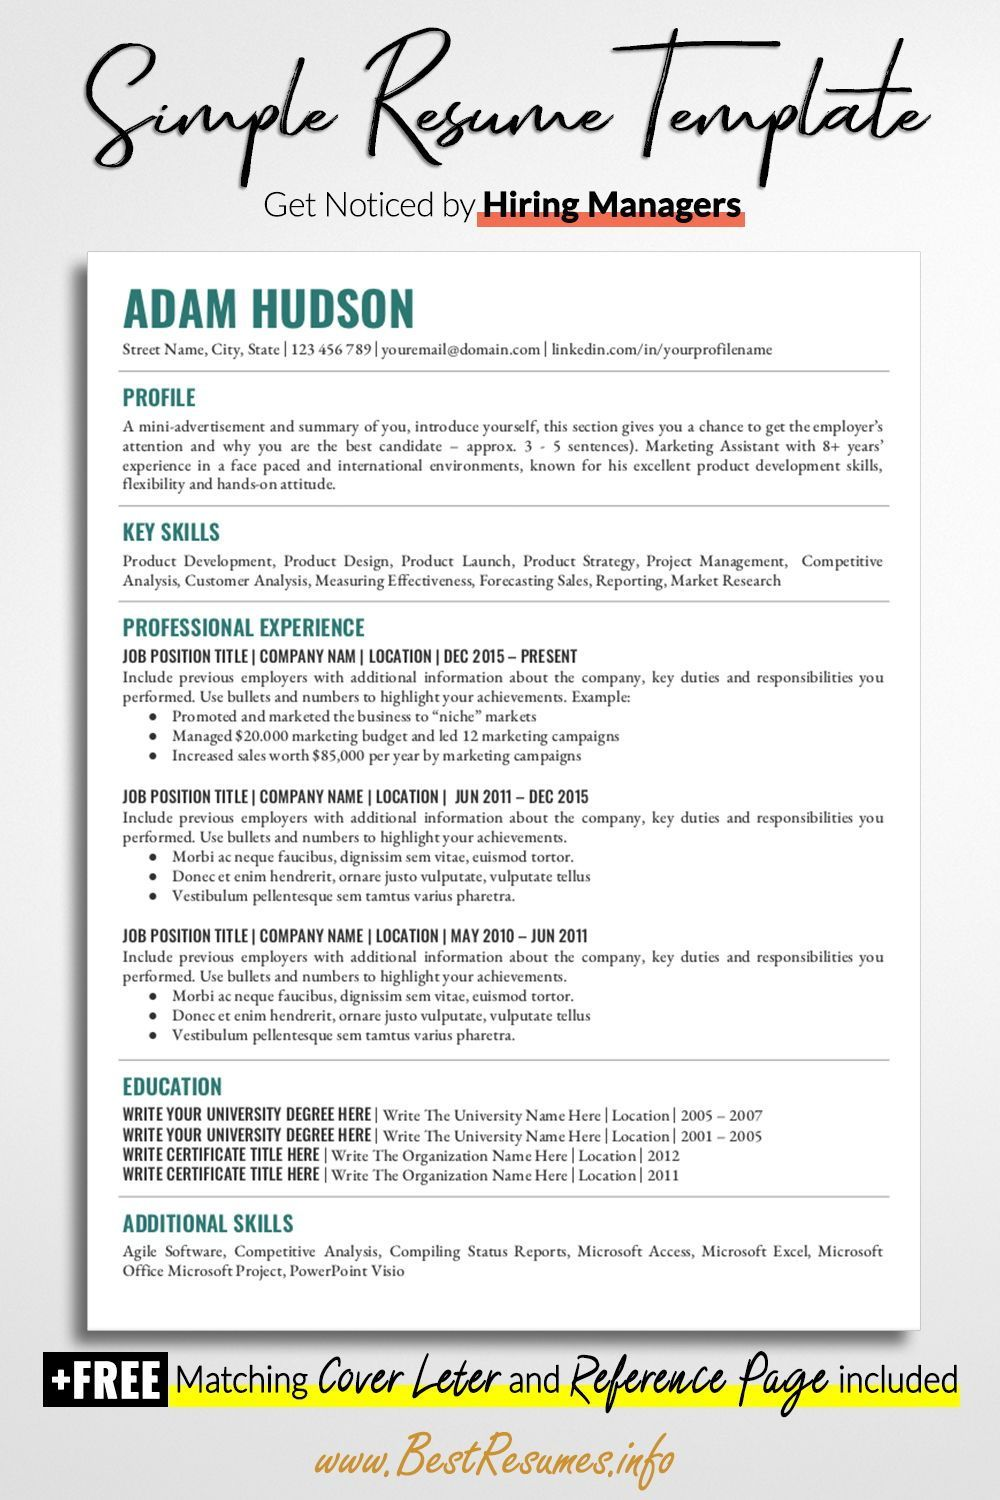 Simple Resume Template layout helps you to stand out with